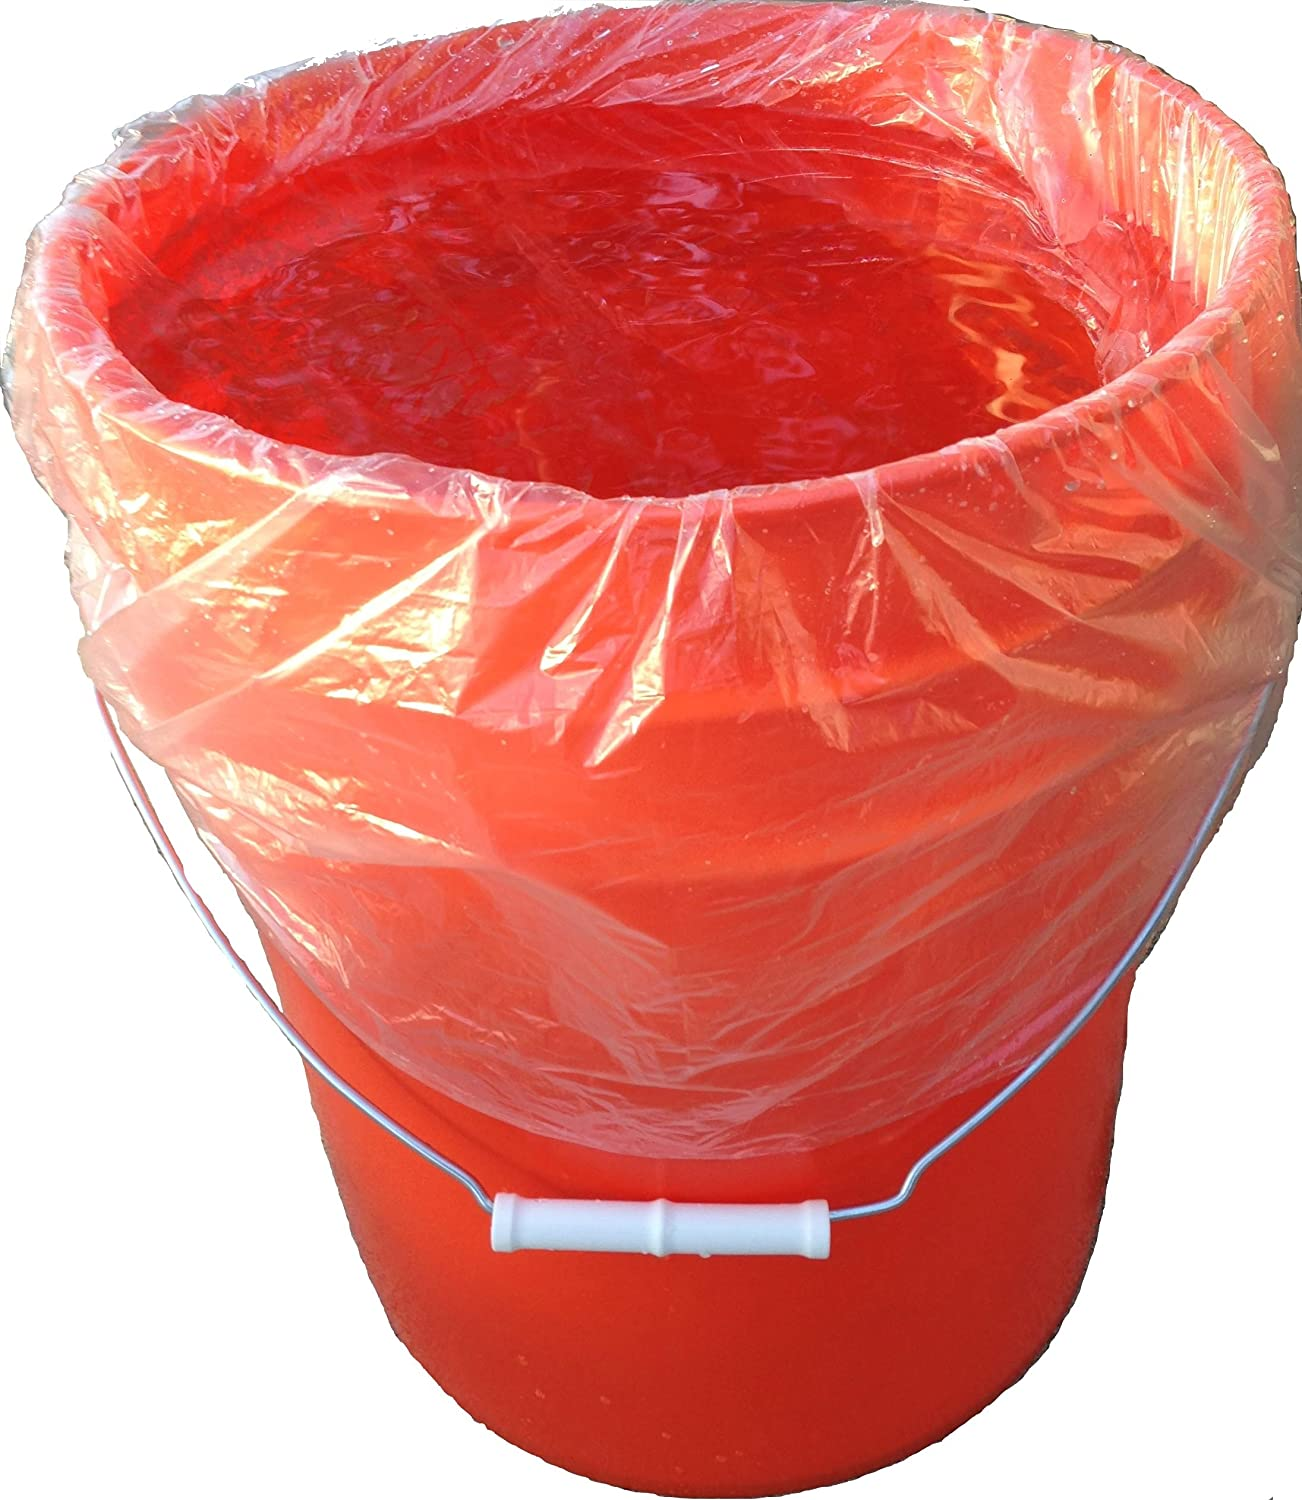 5 Gallon Bucket Liner for Marinading and Brining - Disposable Pail Liner 25 per roll (25) By STARK 5gl